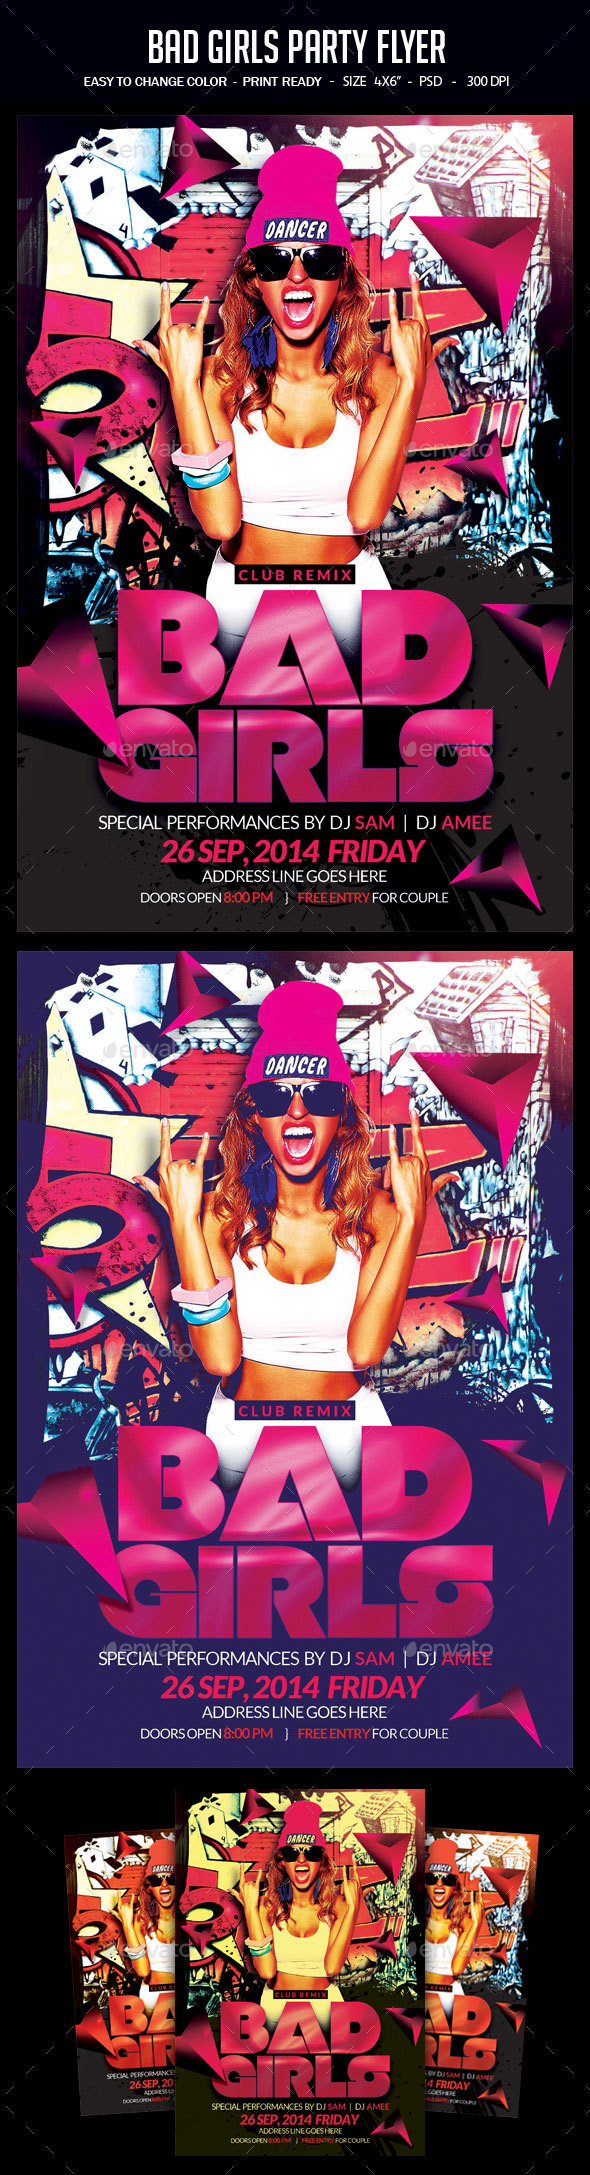 Bad Girls Party Flyer - Clubs & Parties Events